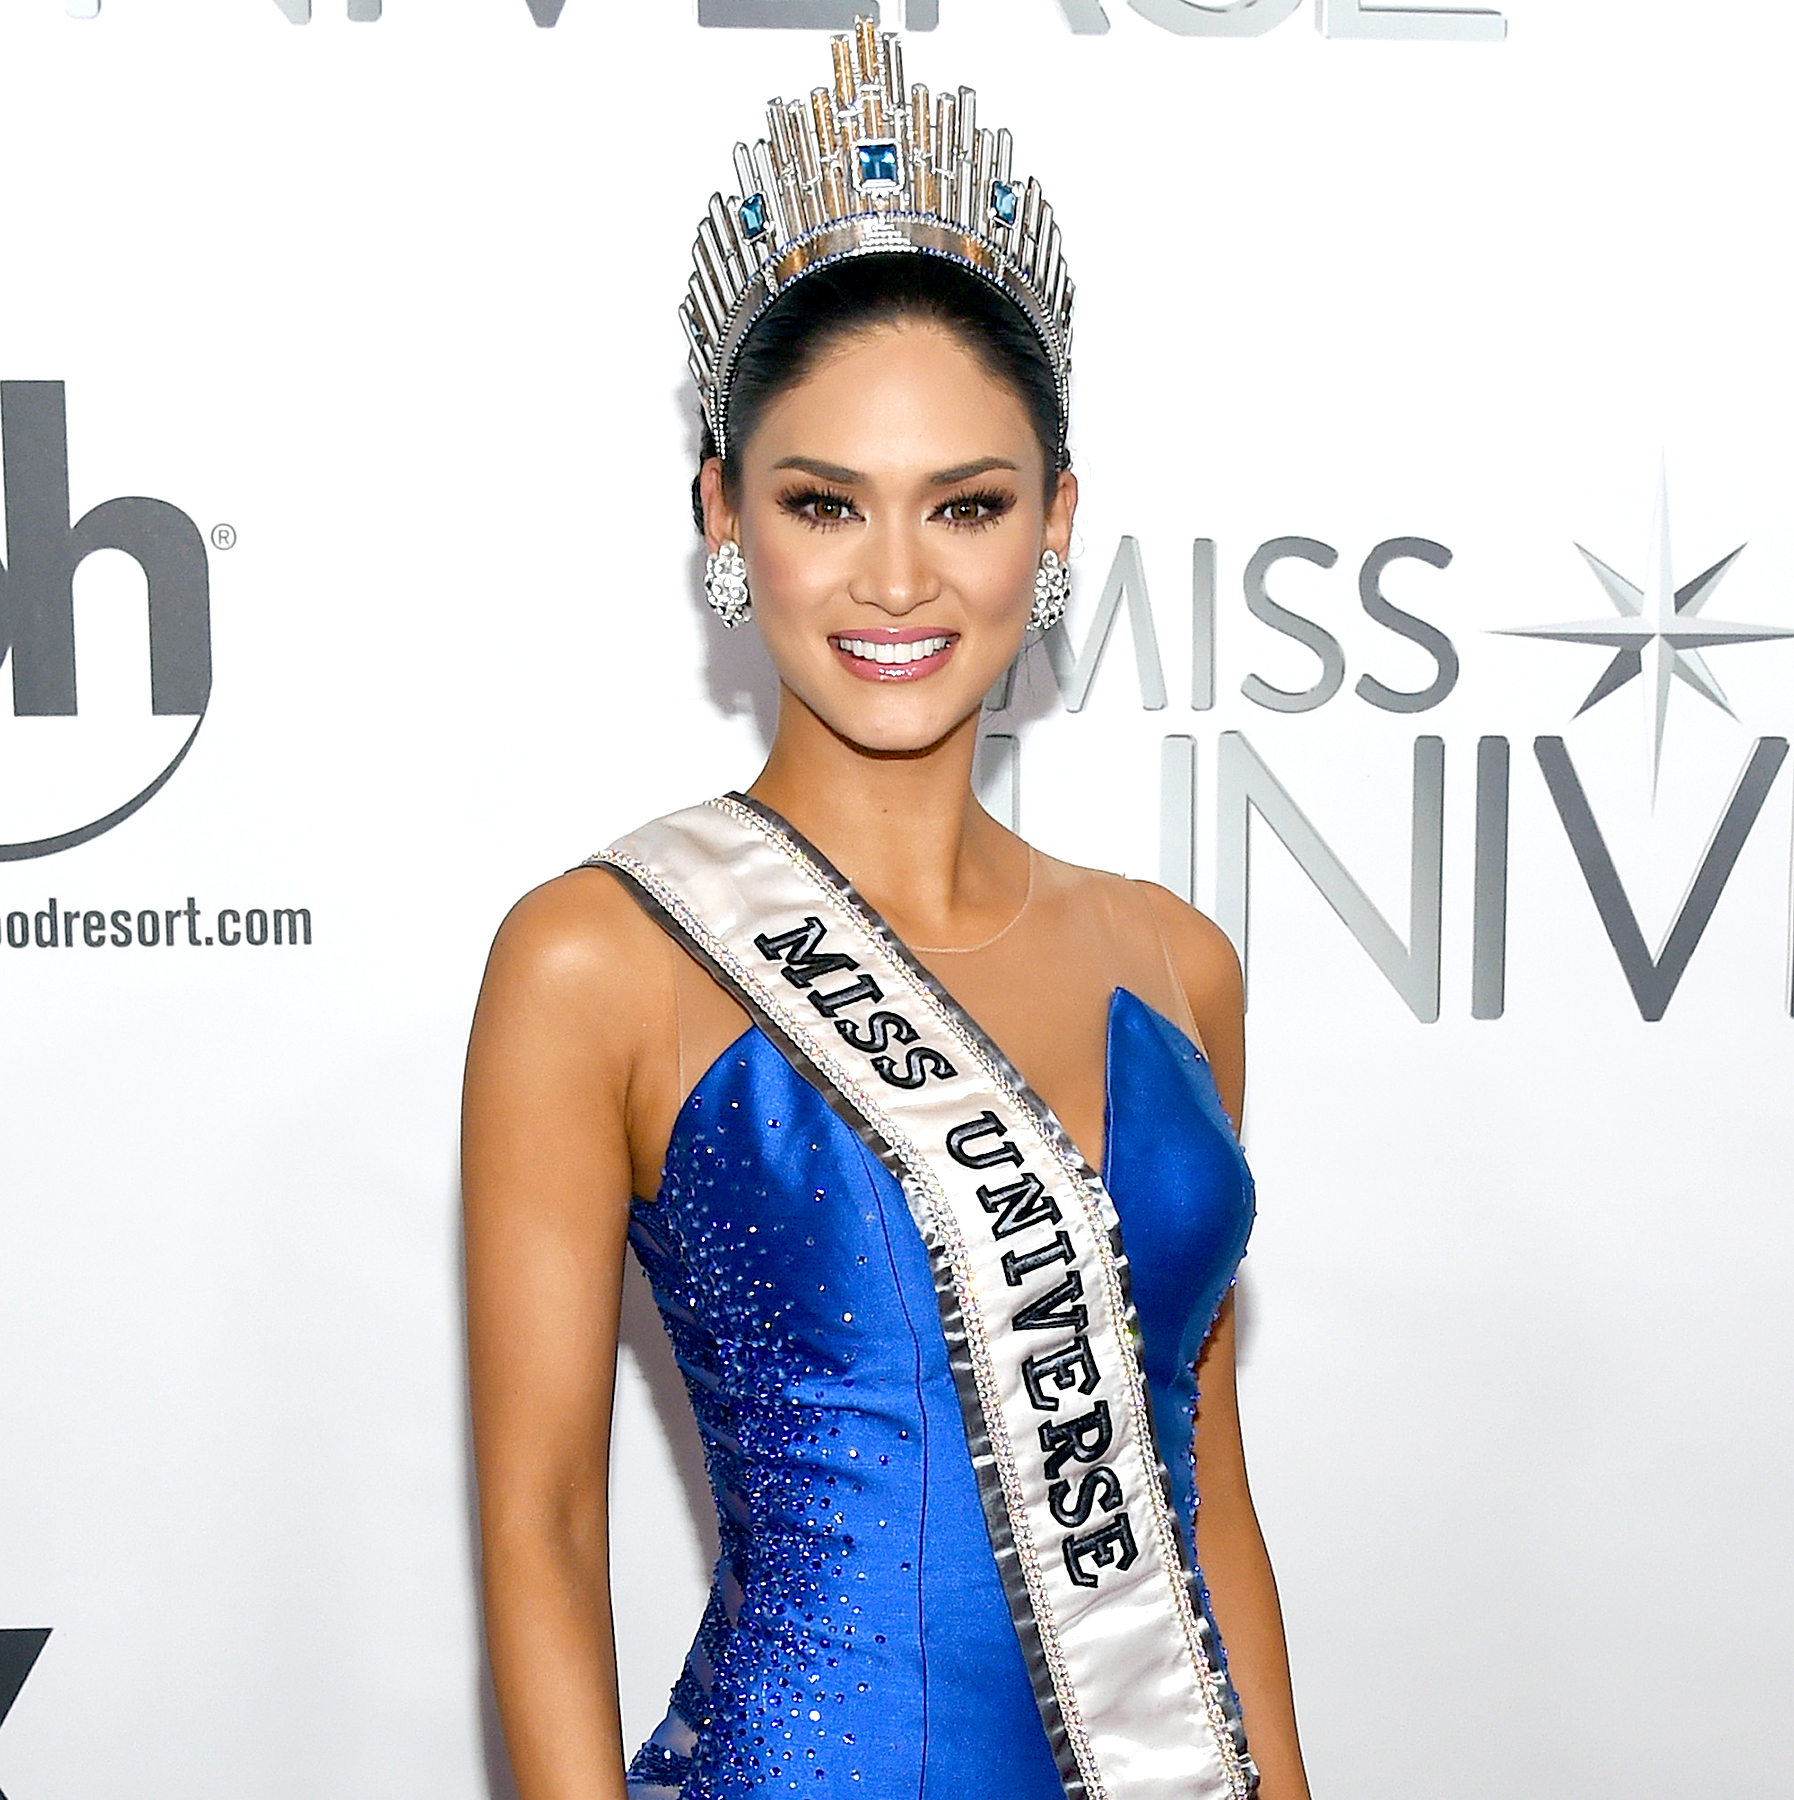 Miss Philippines 2015, Pia Alonzo Wurtzbach, poses for photos after winning the 2015 Miss Universe Pageant.